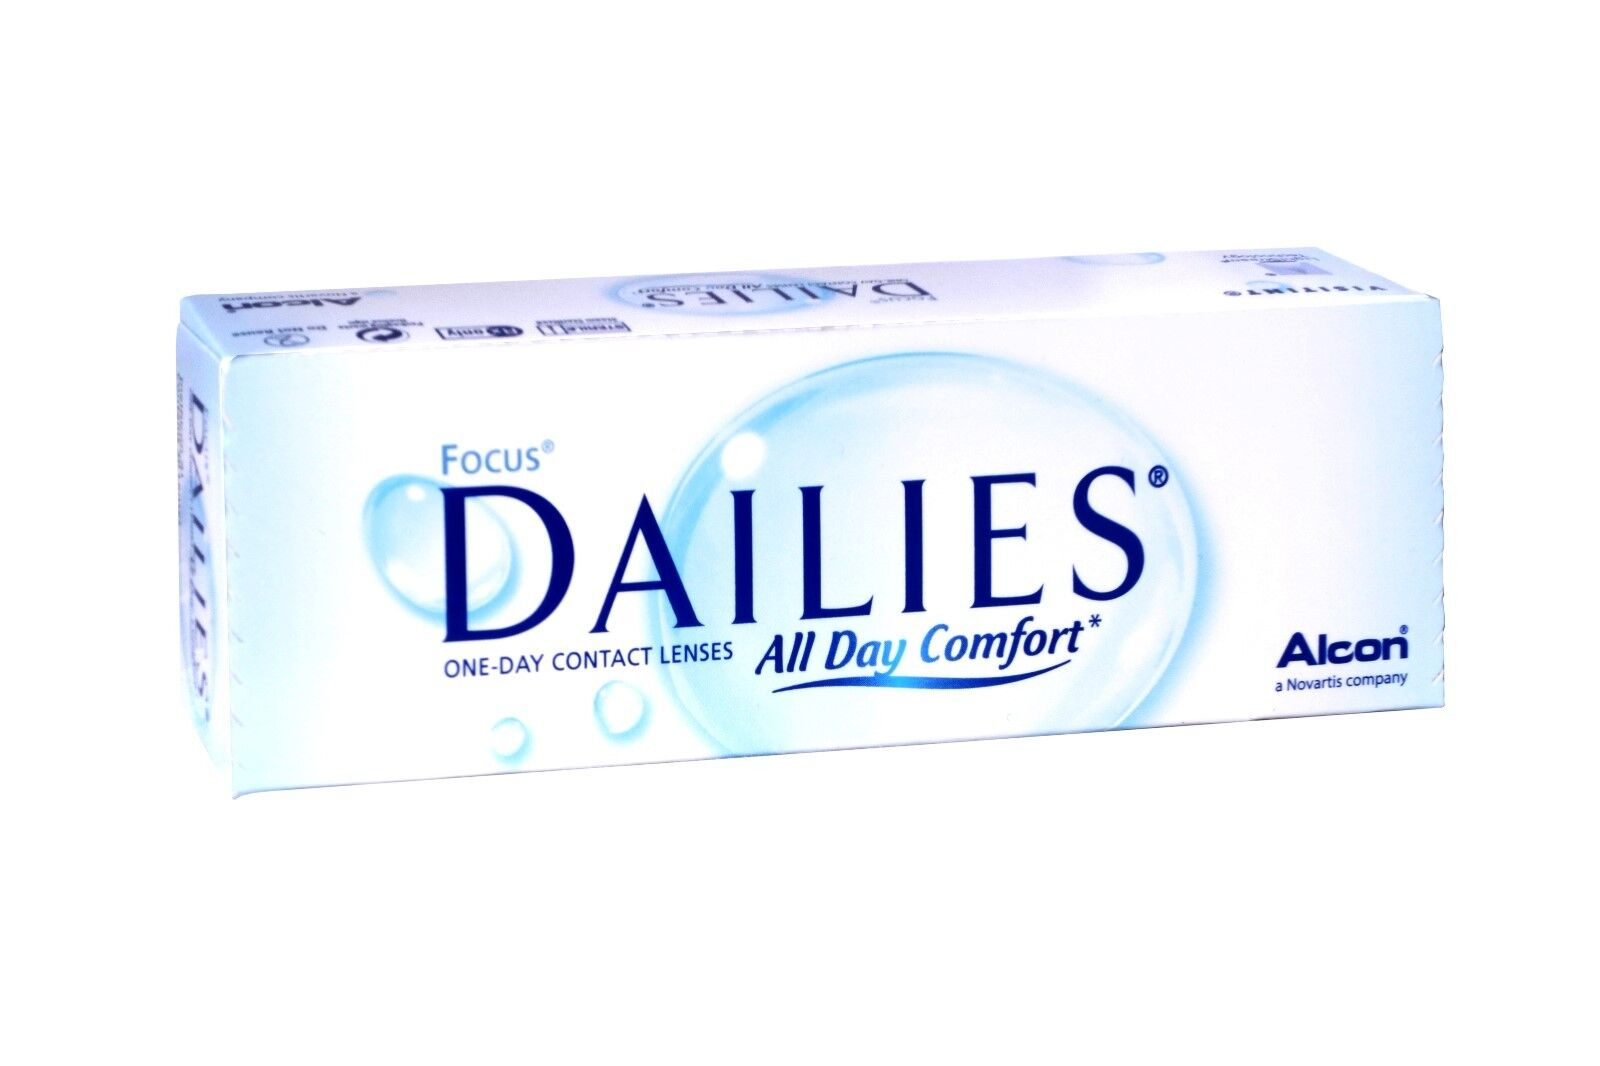 Focus Dailies All Day Comfort - 30er Box - Tageslinsen - weiche Kontaktlinsen